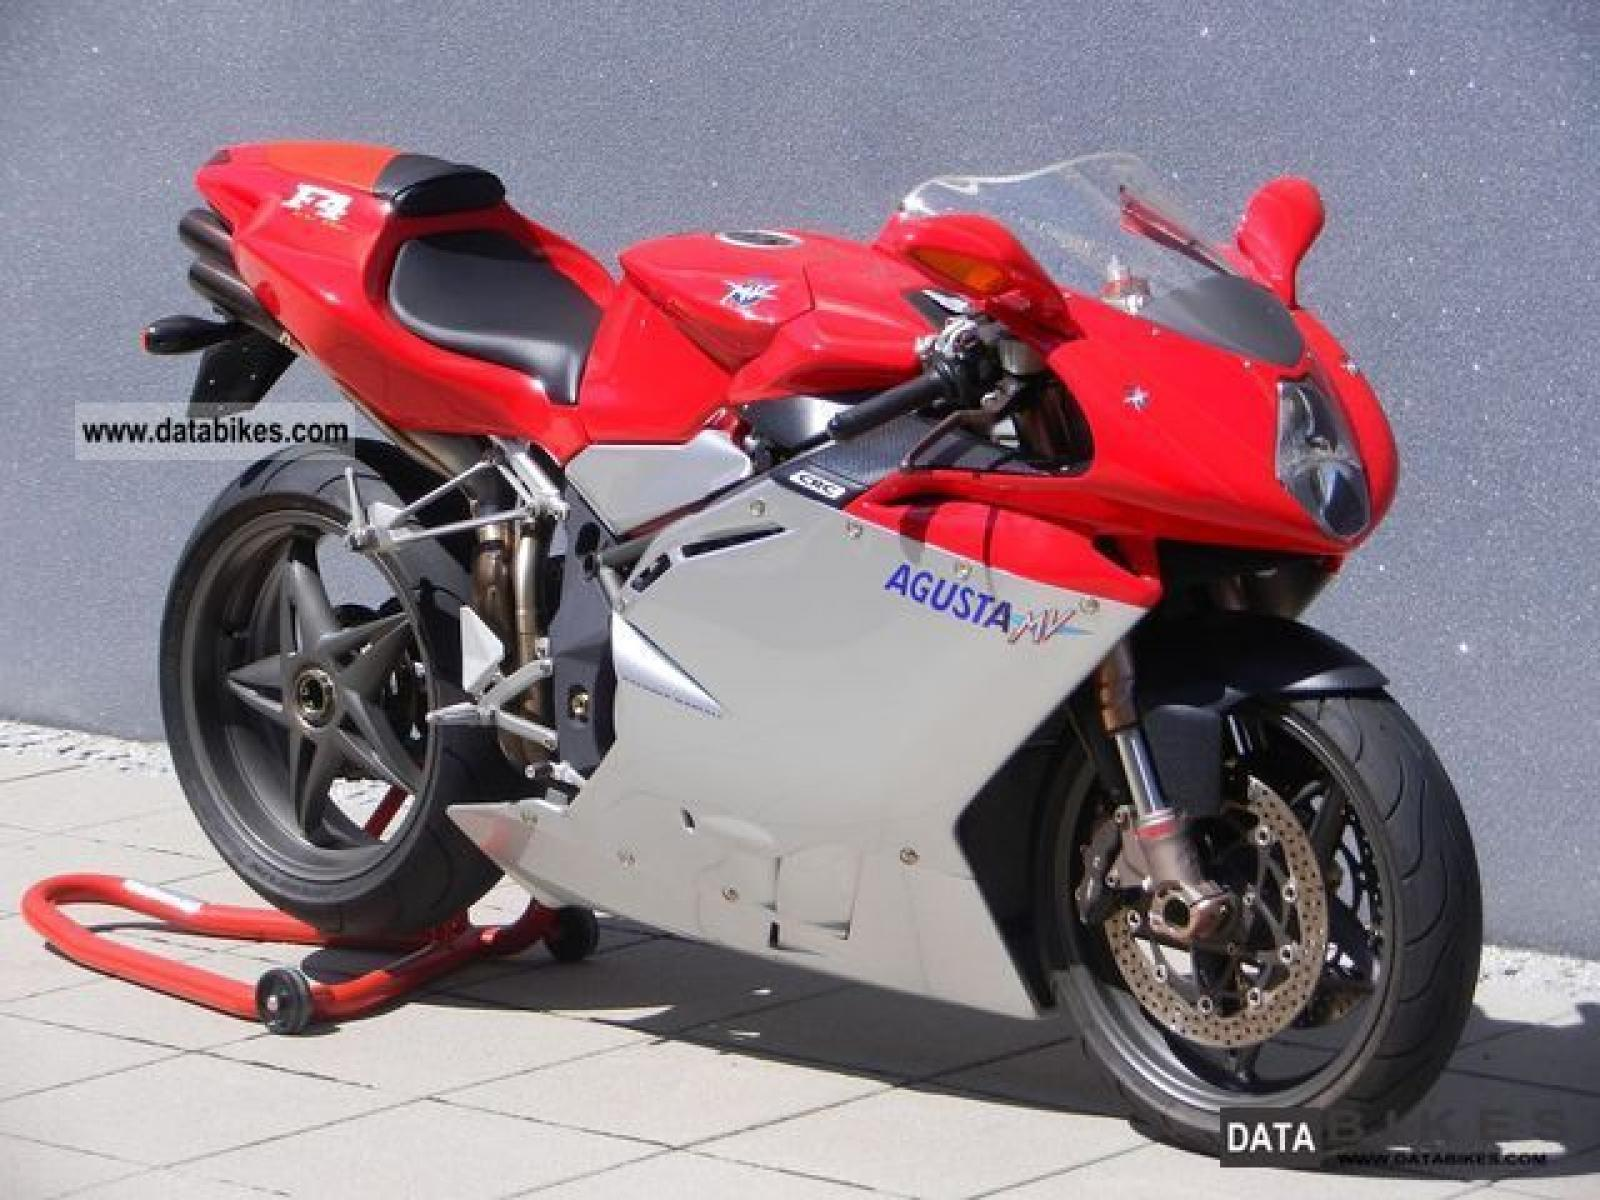 MV Agusta F4 S 1+1 2002 images #113780